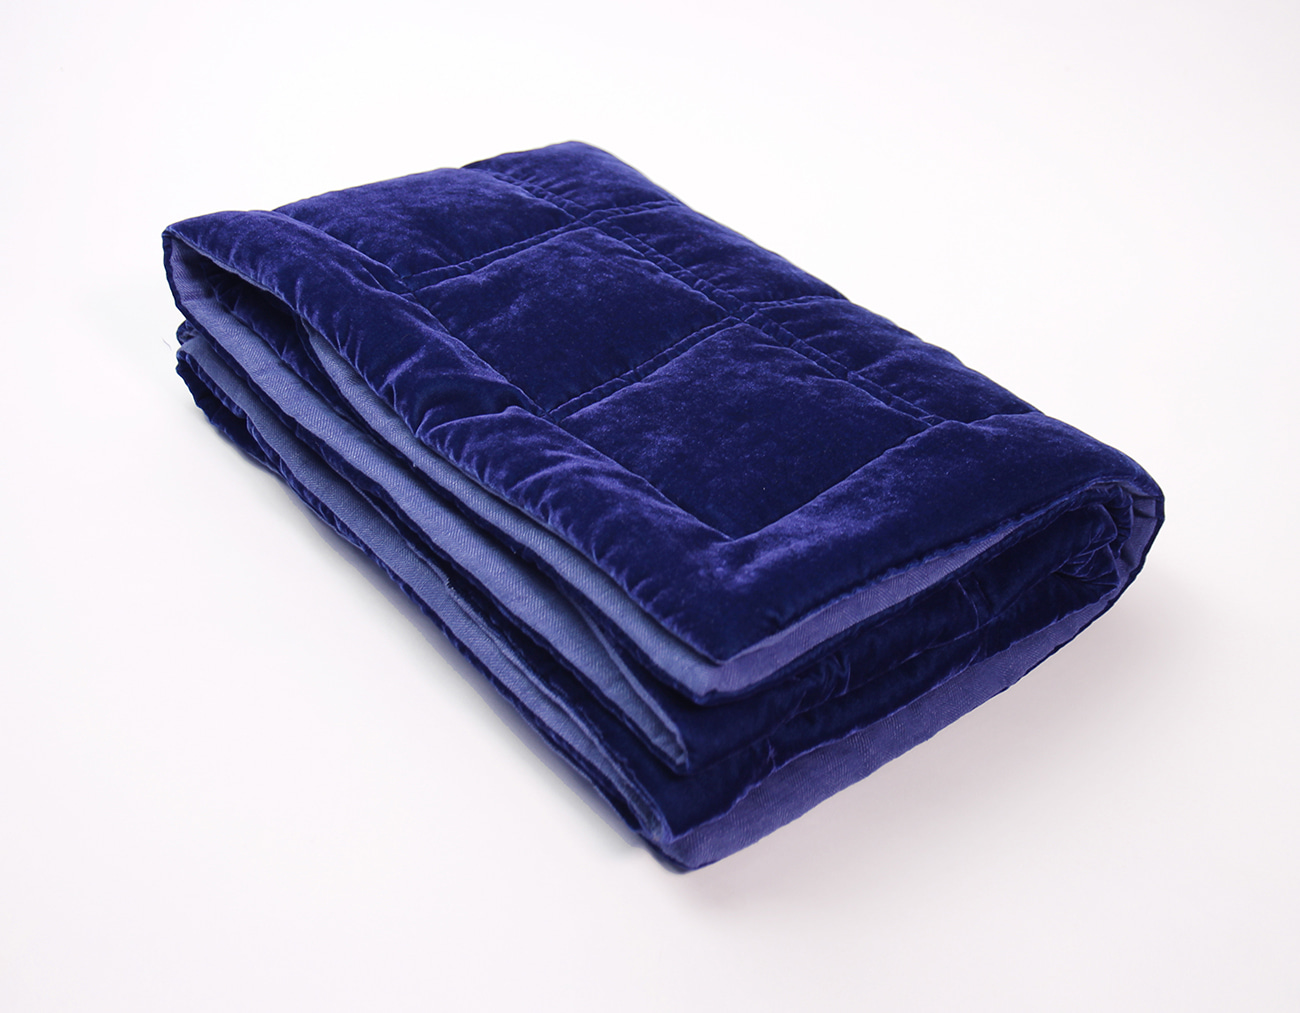 VELVET QUILT BED RUNNER - DEEP BLUE